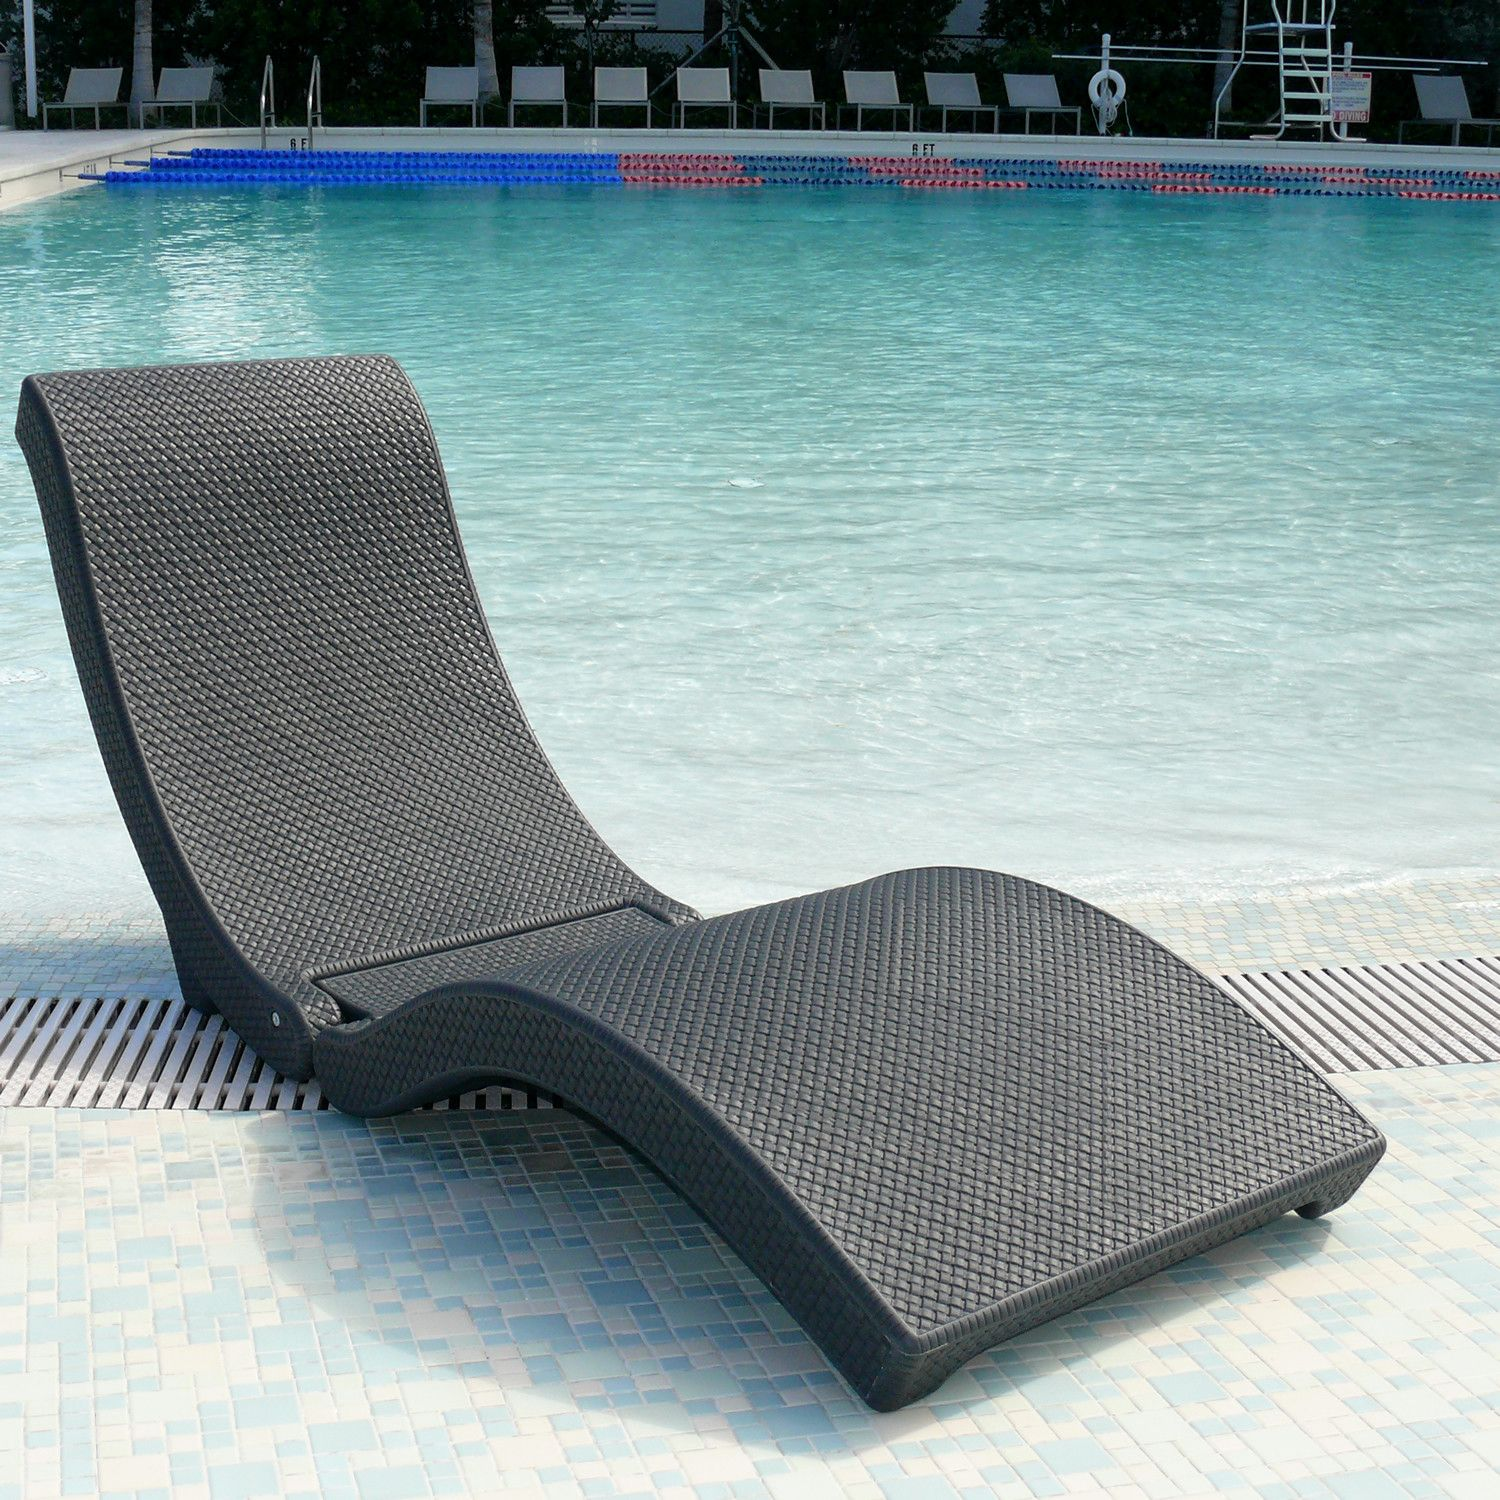 Resin Lounge Chair West Elm Crosby Plastic Chairs Pool Belize